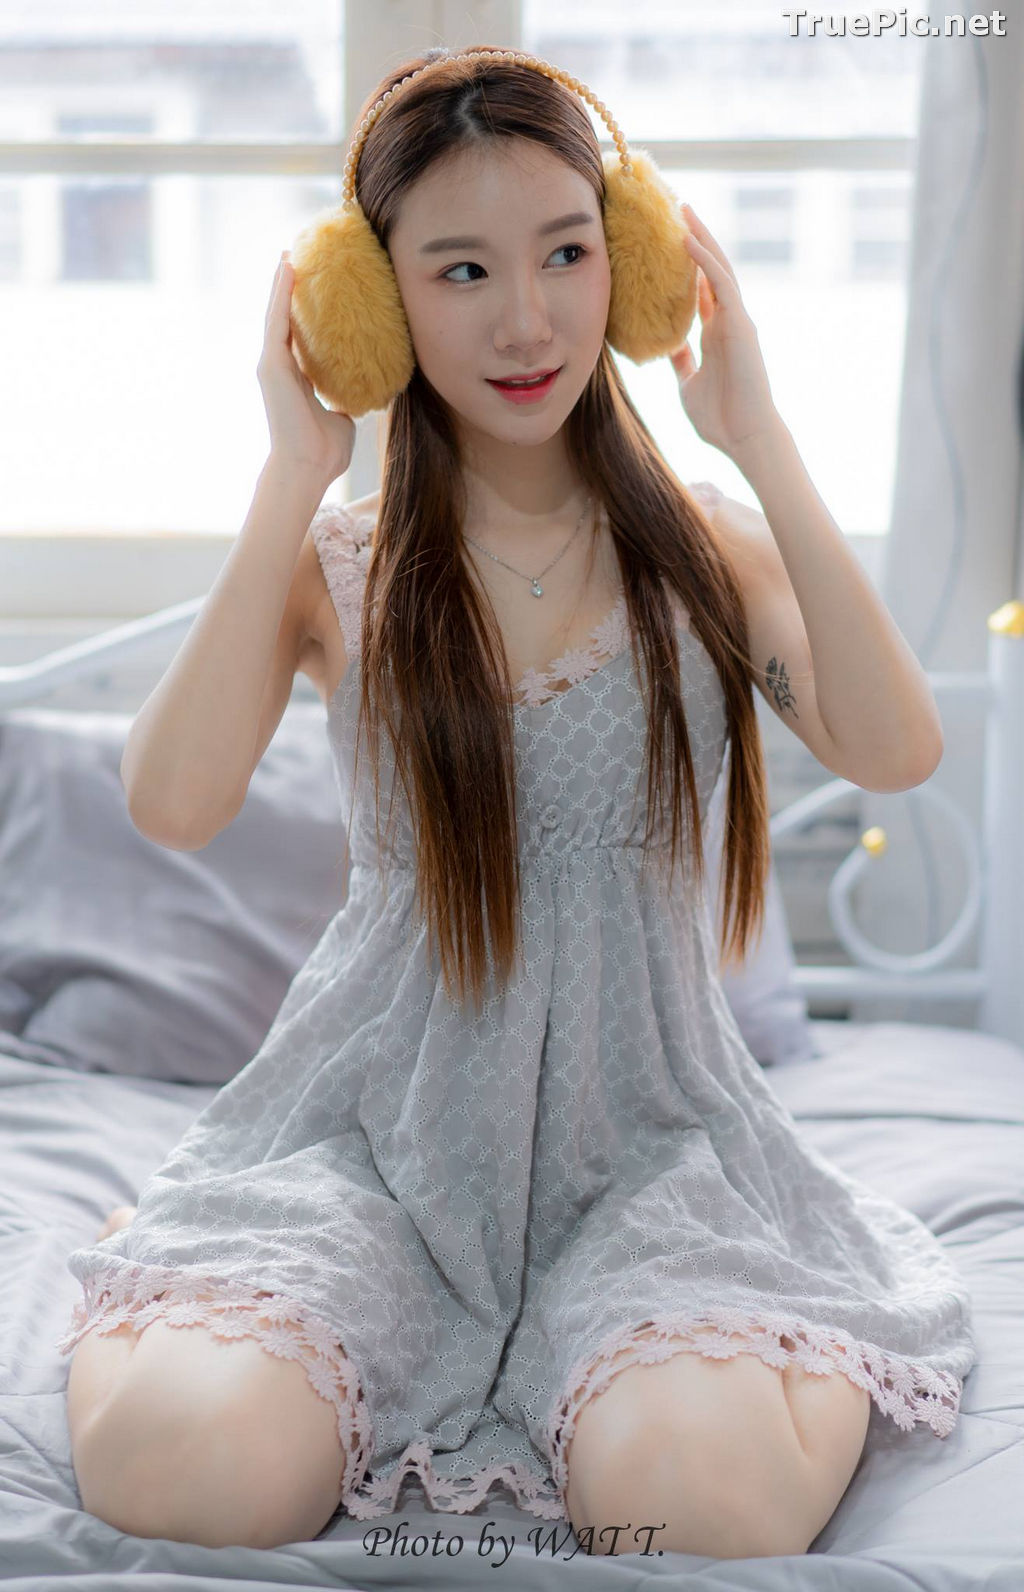 Image Thailand Cute Model - Carolis Mok - Morning Cutie Girl - TruePic.net - Picture-5